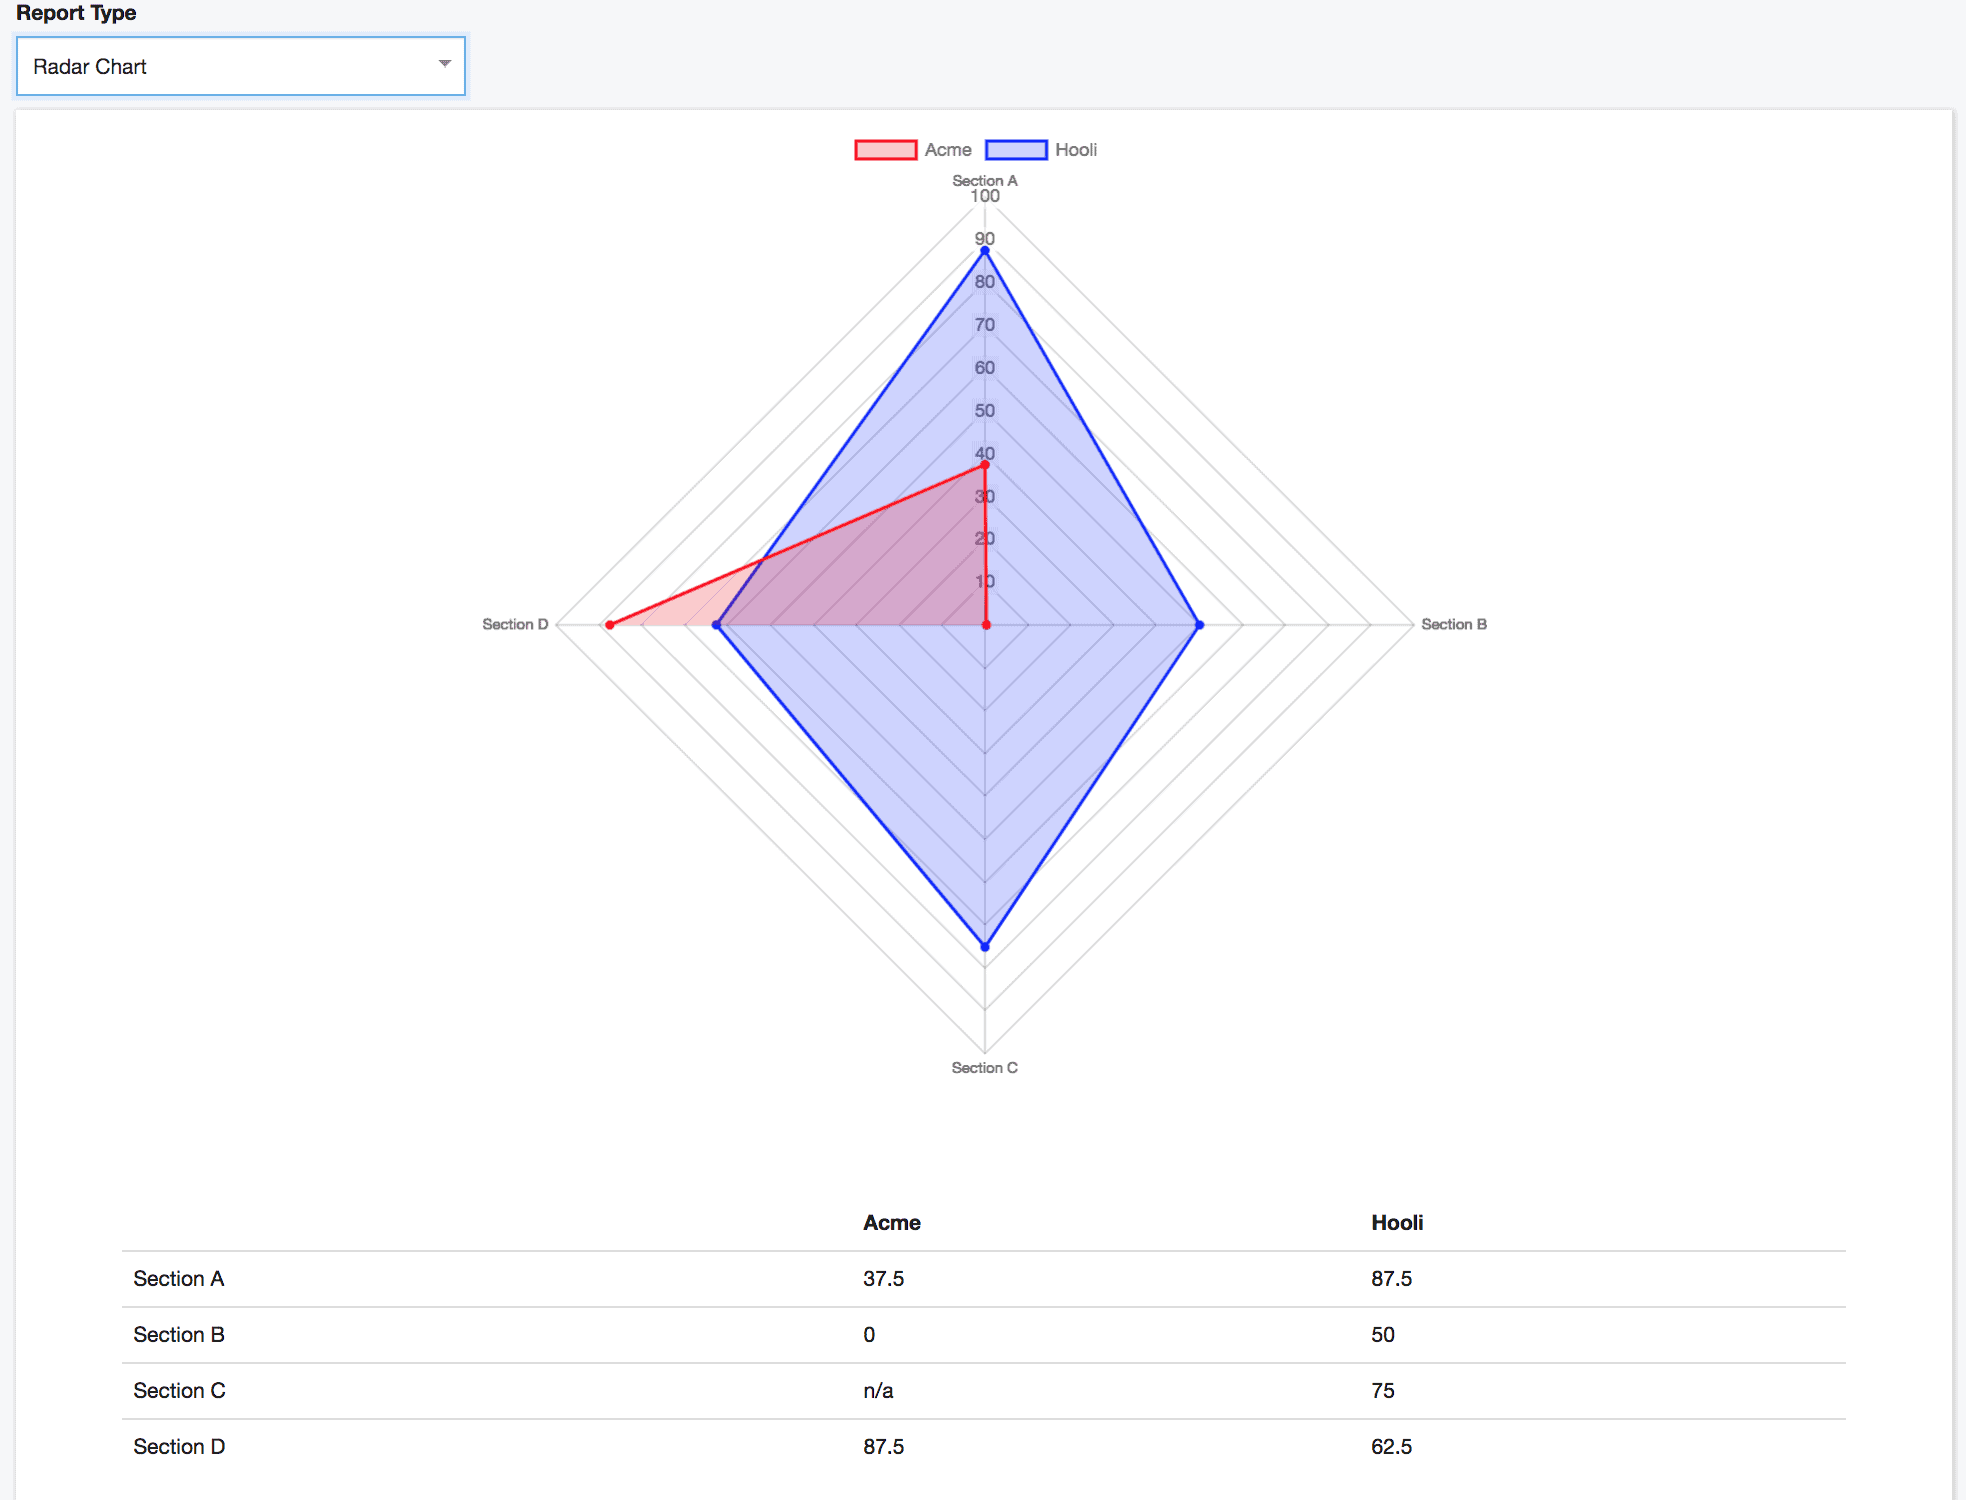 Supplier Scorecard Radar Chart